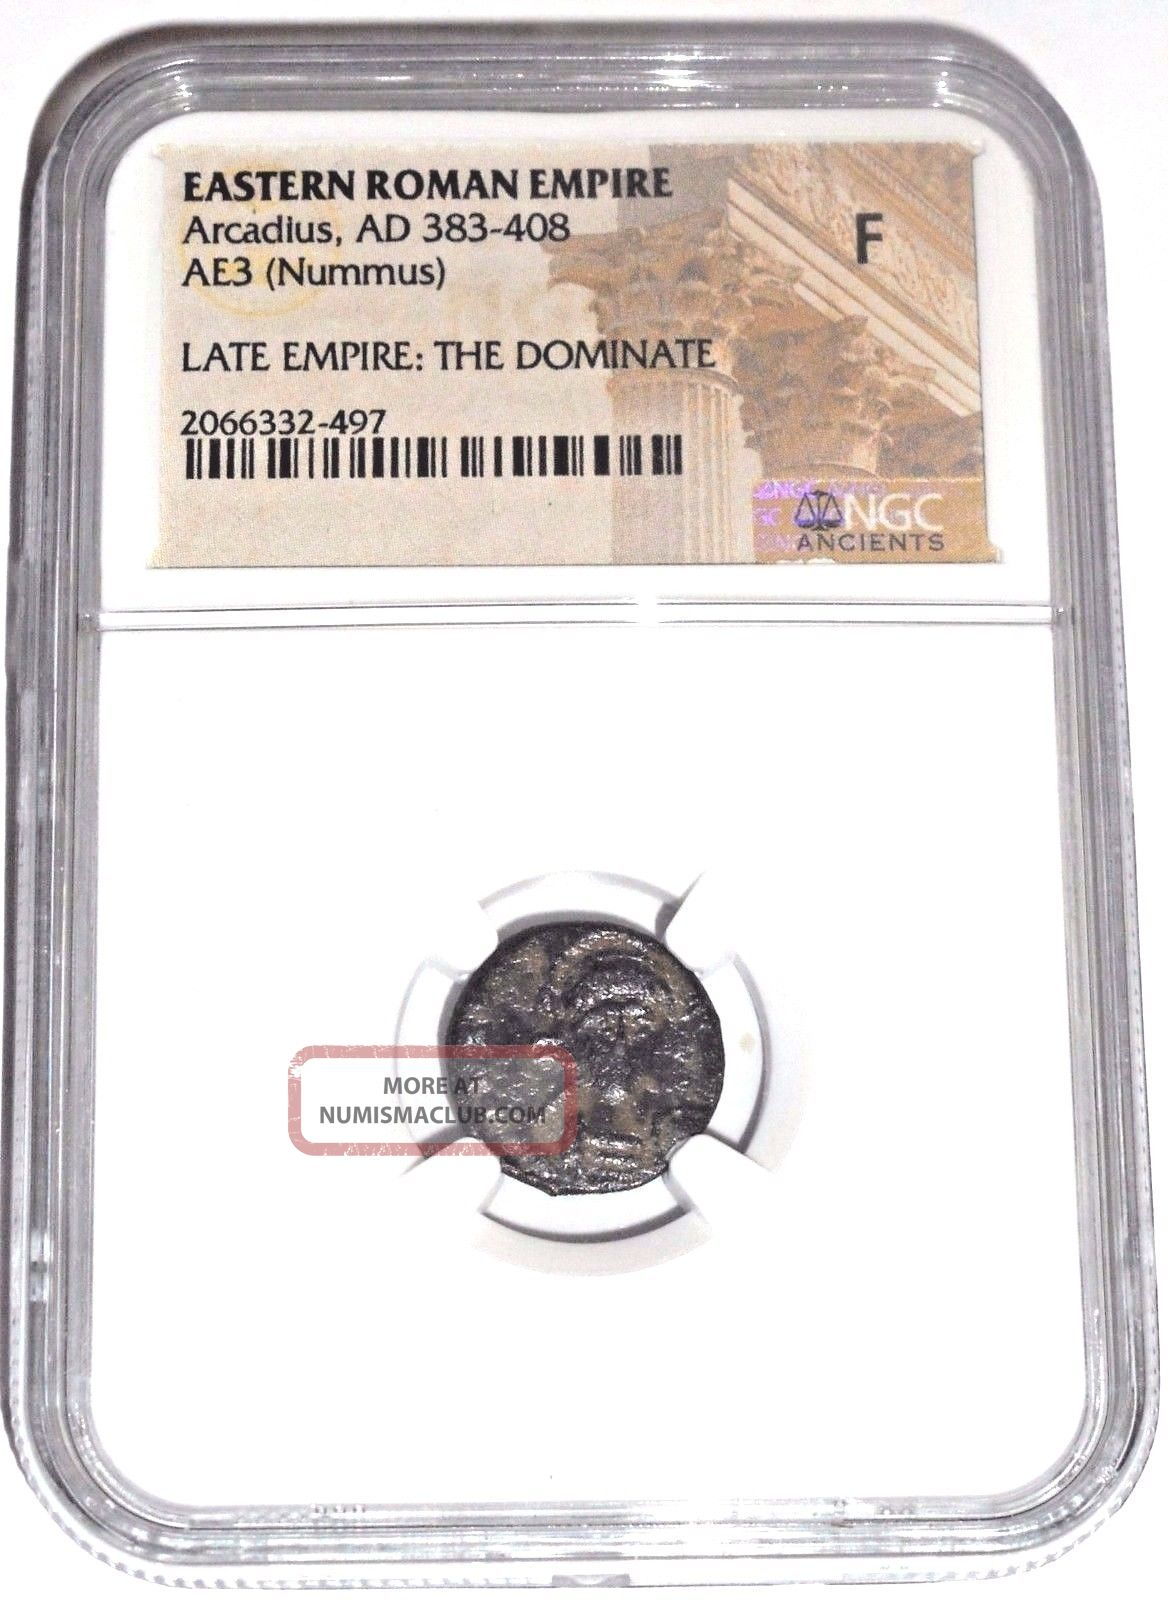 Eastern Roman Empire Arcadius The Dominate Nummus Coin,  Ngc Certified F Coins: Ancient photo